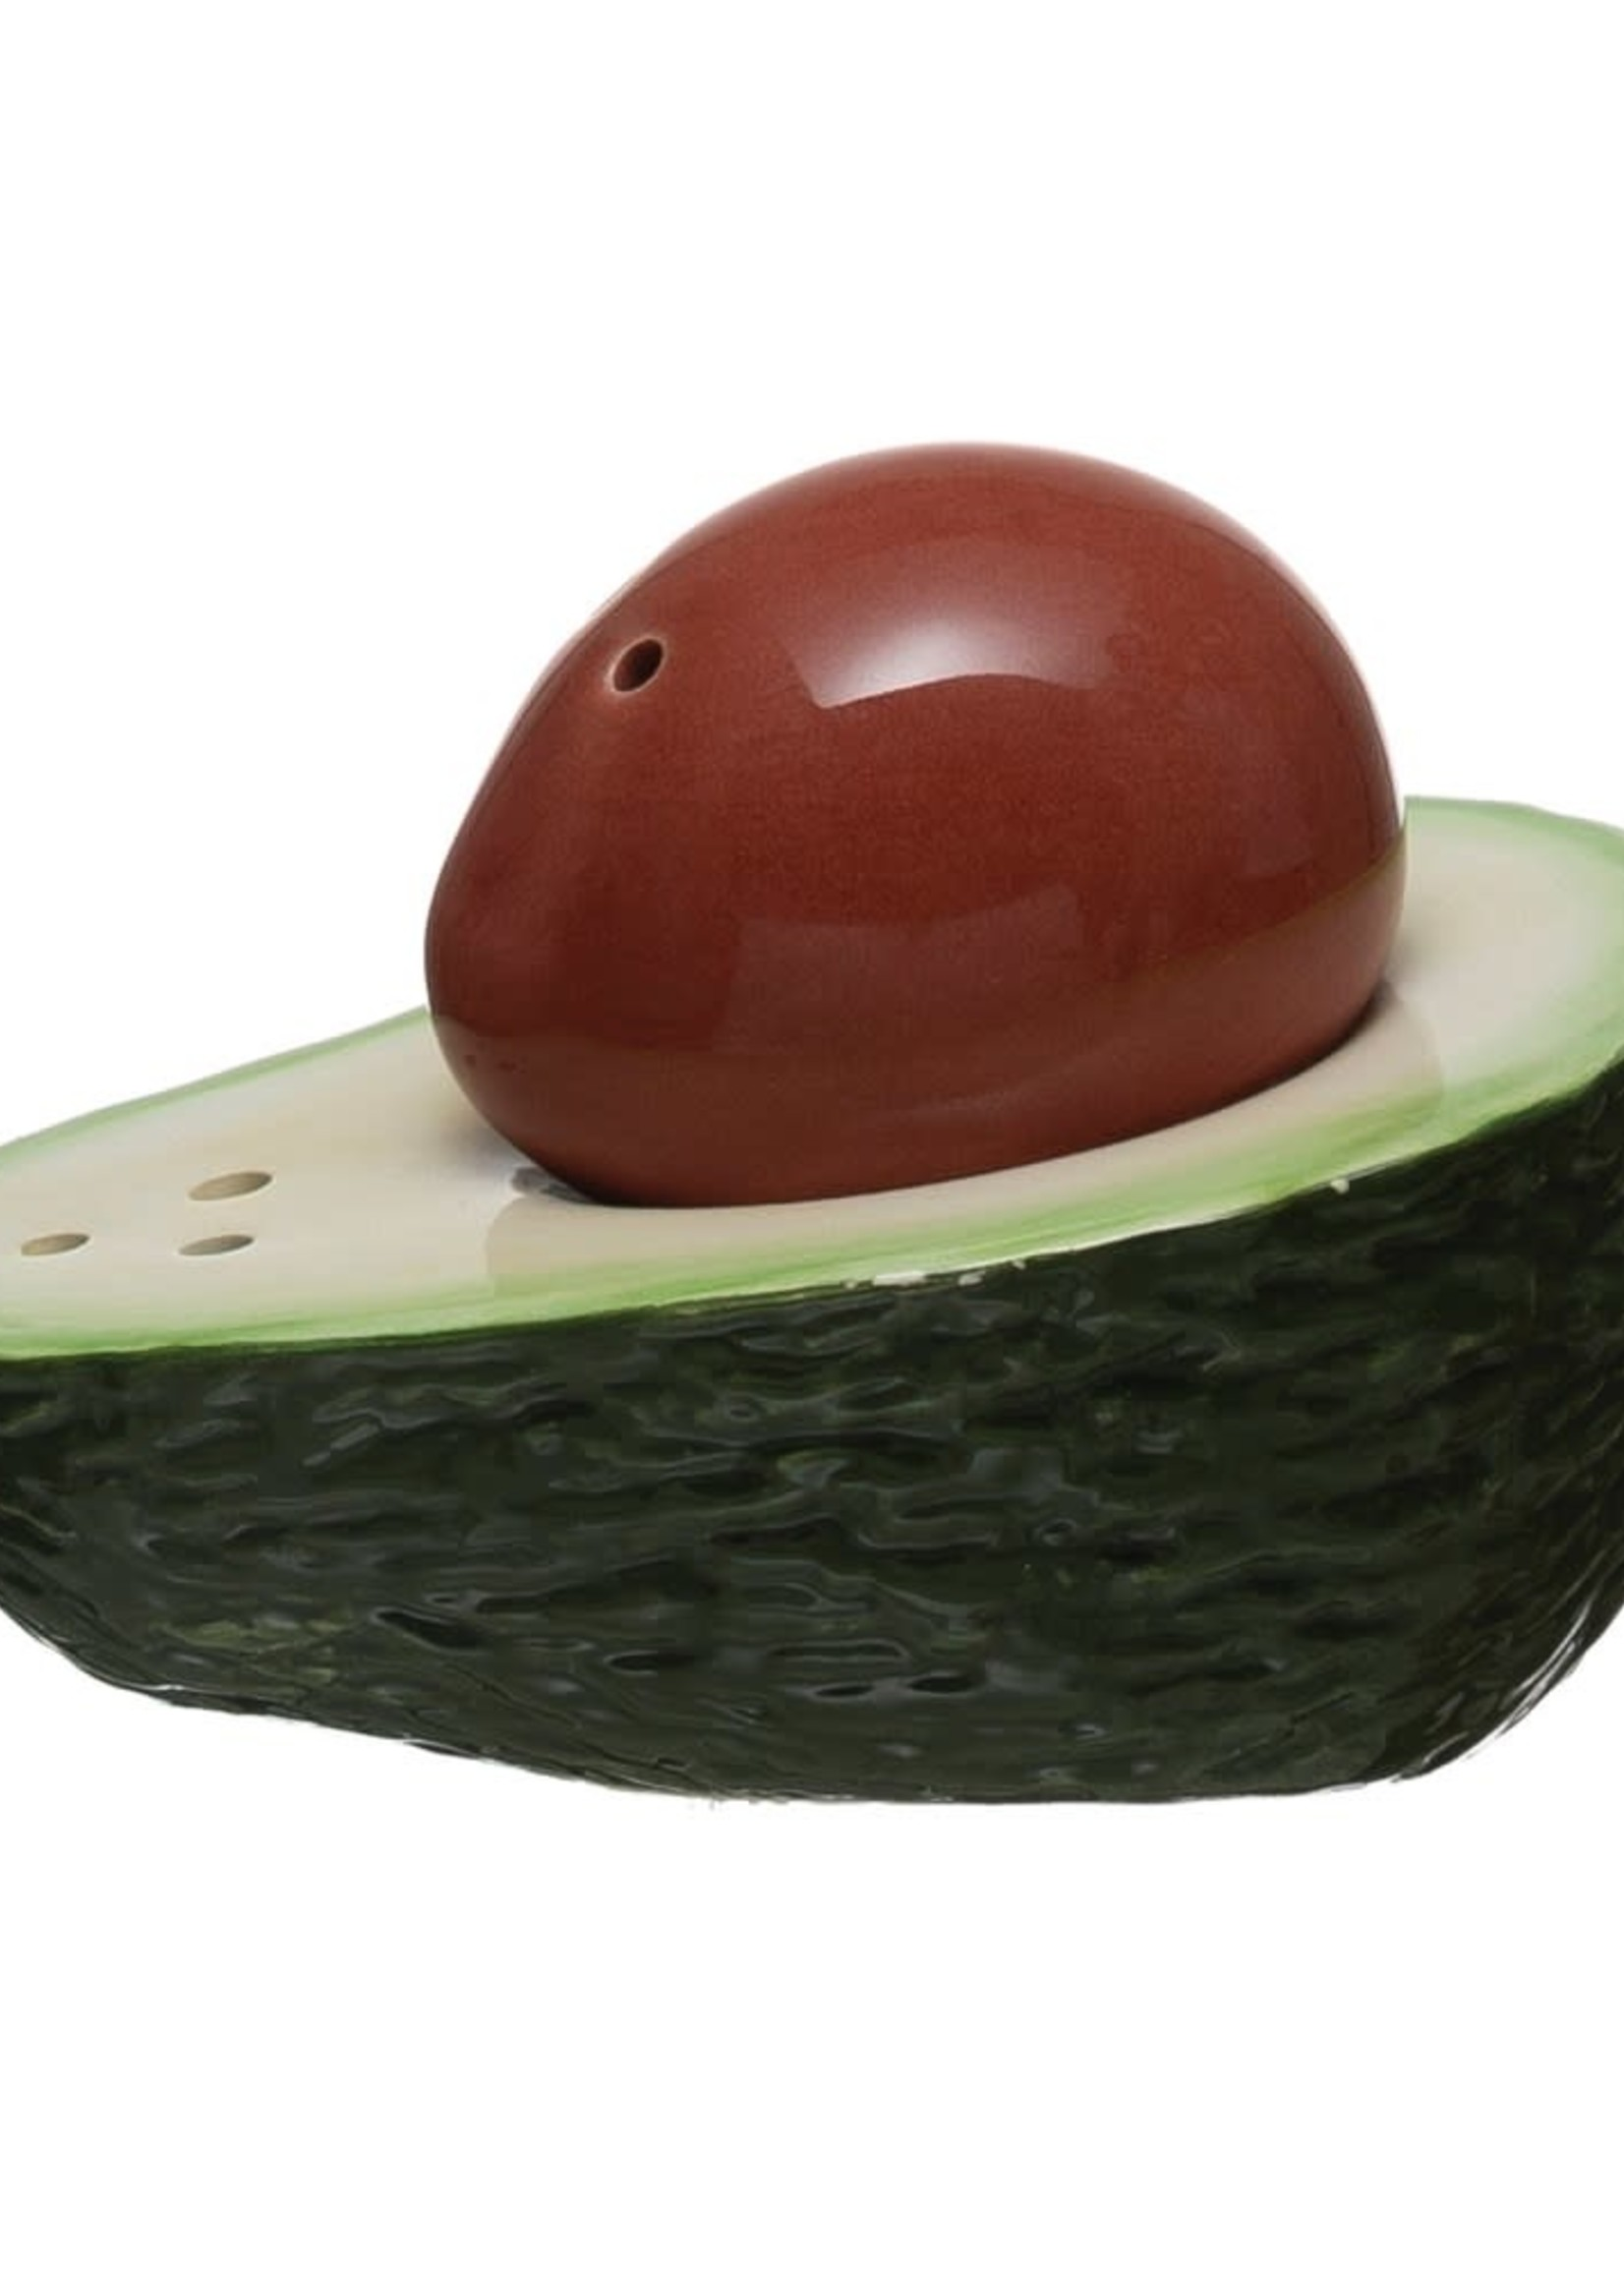 CREATIVE COOP CCOOP DOLOMITE AVOCADO SALT & PEPPER SHAKER